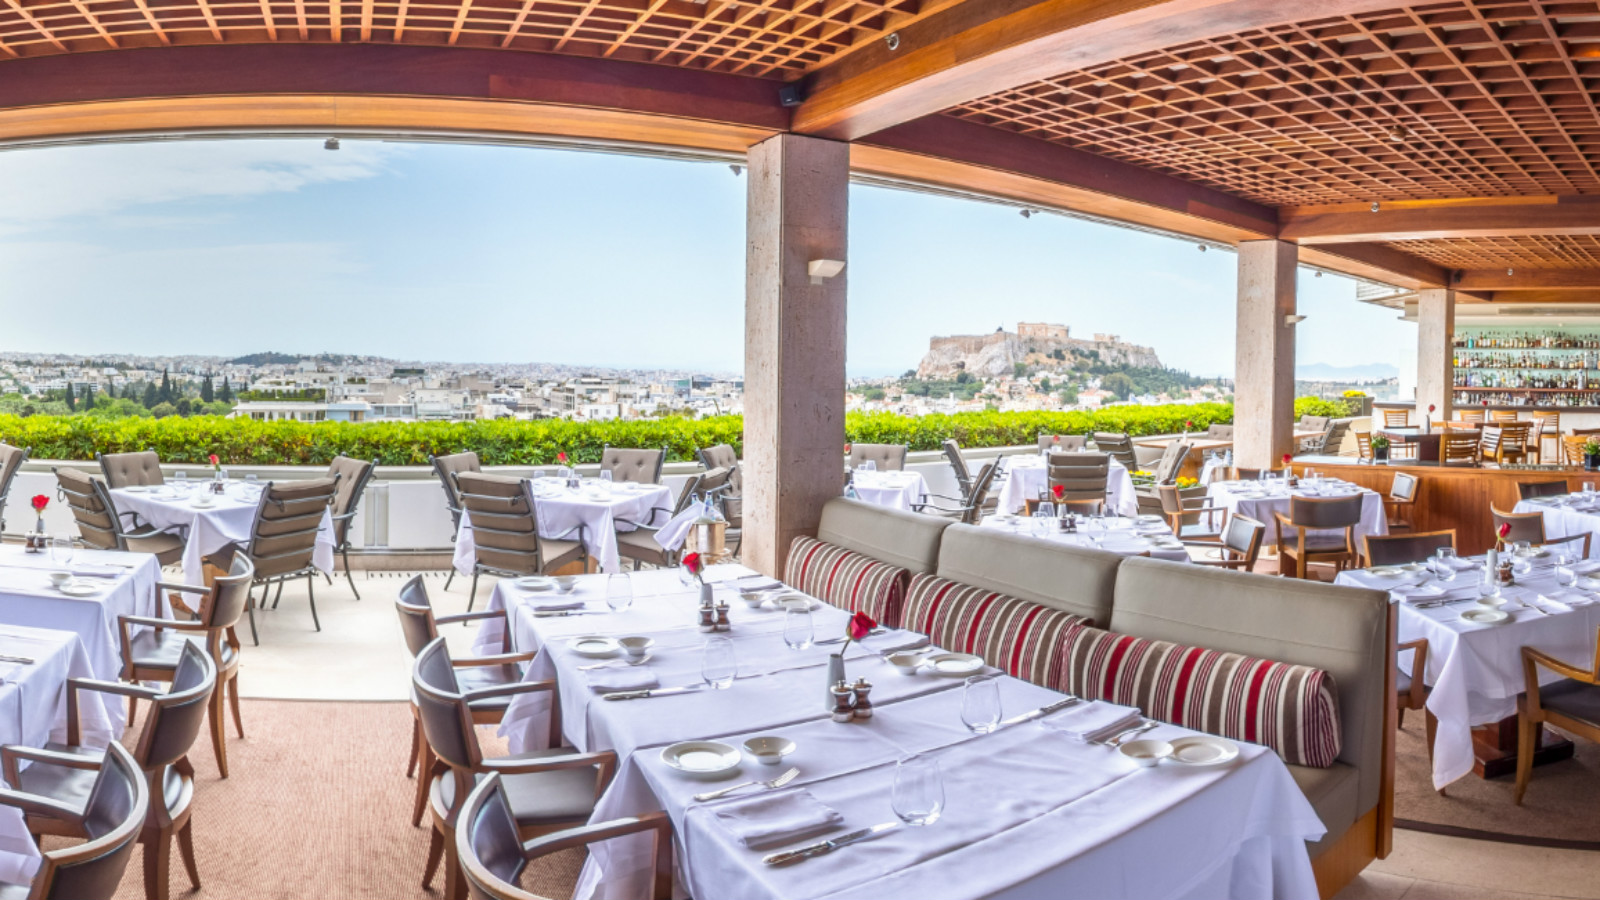 Hotel Grande Bretagne_GB Roof Garden Restaurant and Bar_Athens Greece_View to Syntagma Square and Acropolis